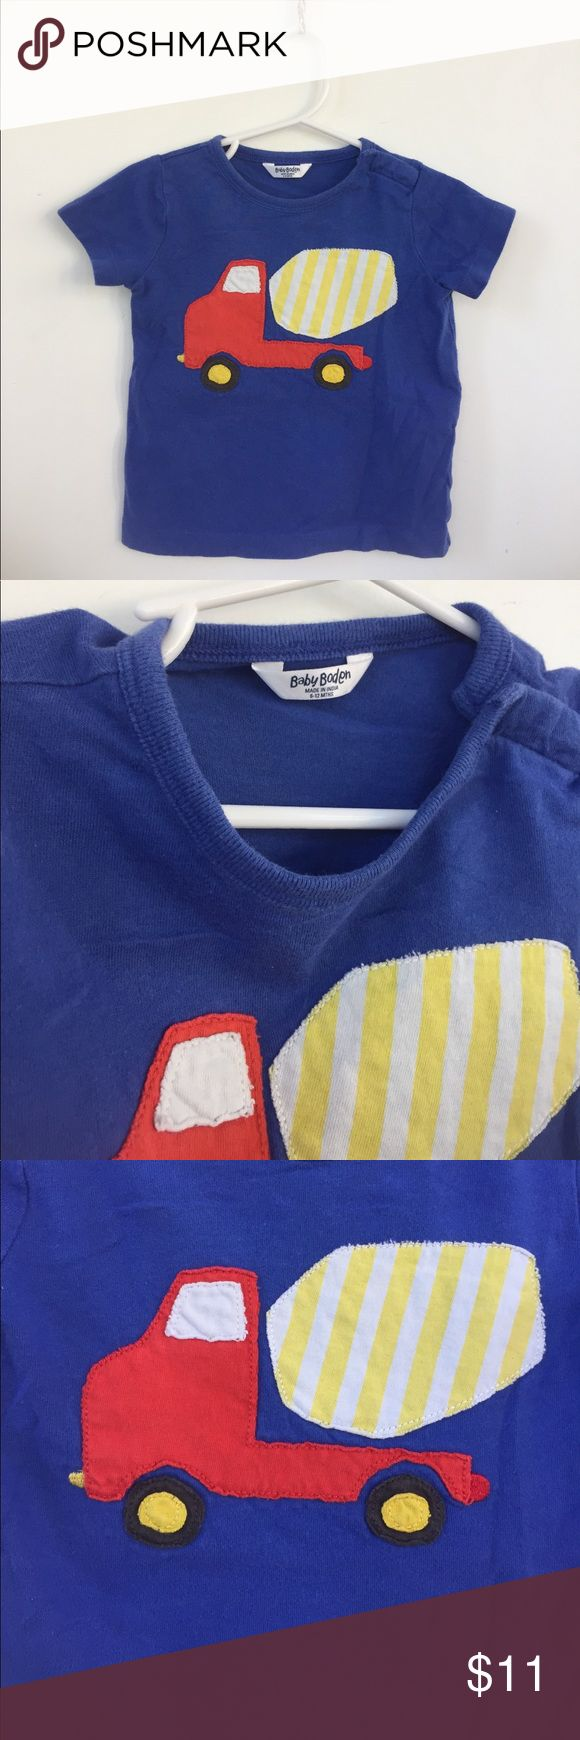 EUC- blue Baby Boden vehicle appliqué tee Despite being one of our favorites, this adorable cement mixer tee is still in pretty excellent condition. Some wash wear, but otherwise no damage. Size 6-12M Mini Boden Shirts & Tops Tees - Short Sleeve